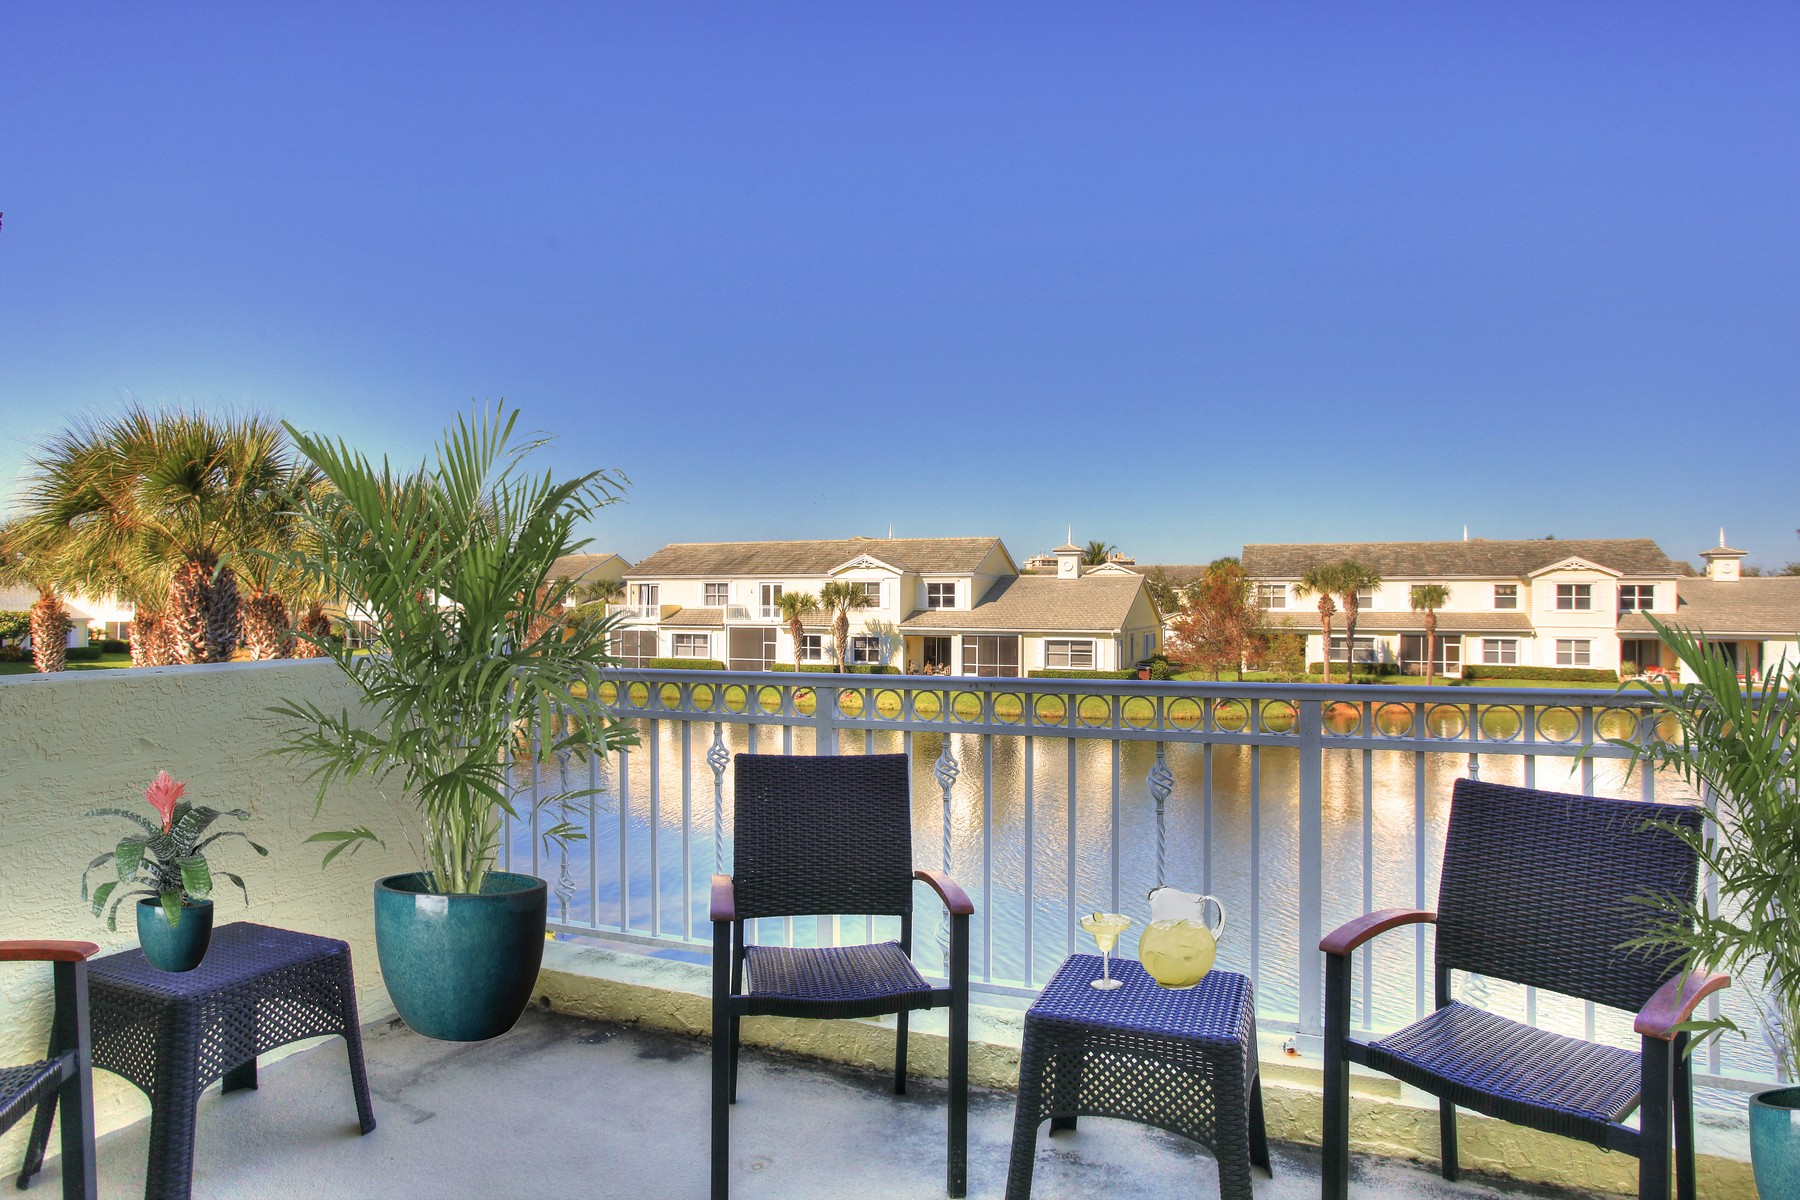 Single Family Homes for Sale at Large Four Bedroom Lakeside Townhome 1705 Mariner Bay Blvd Hutchinson Island, Florida 34949 United States